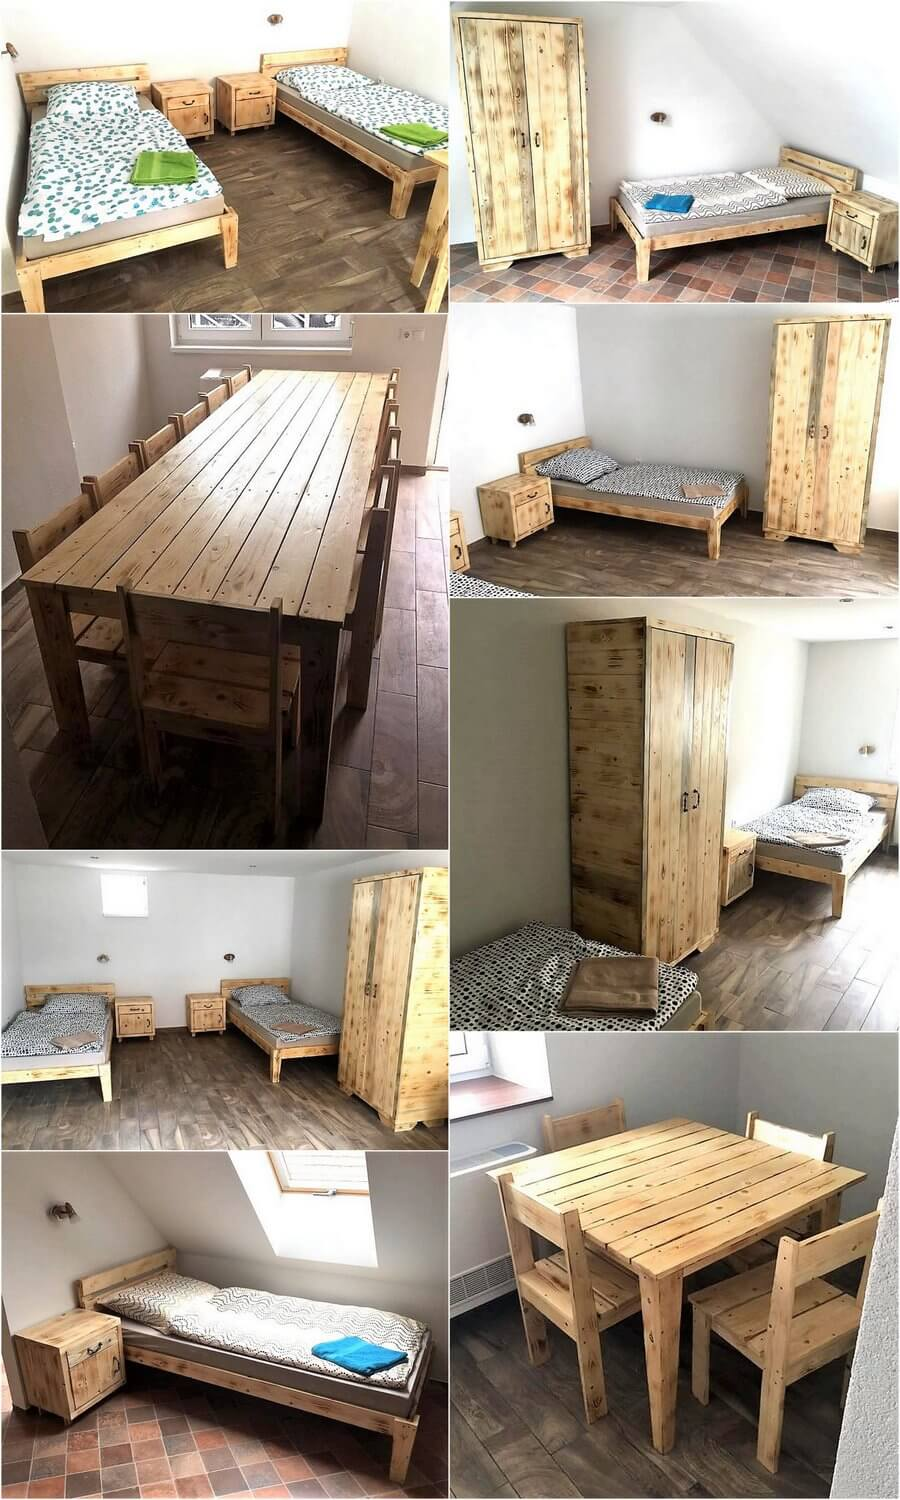 Delicieux Boarding House Furniture Made With Recycled Pallets